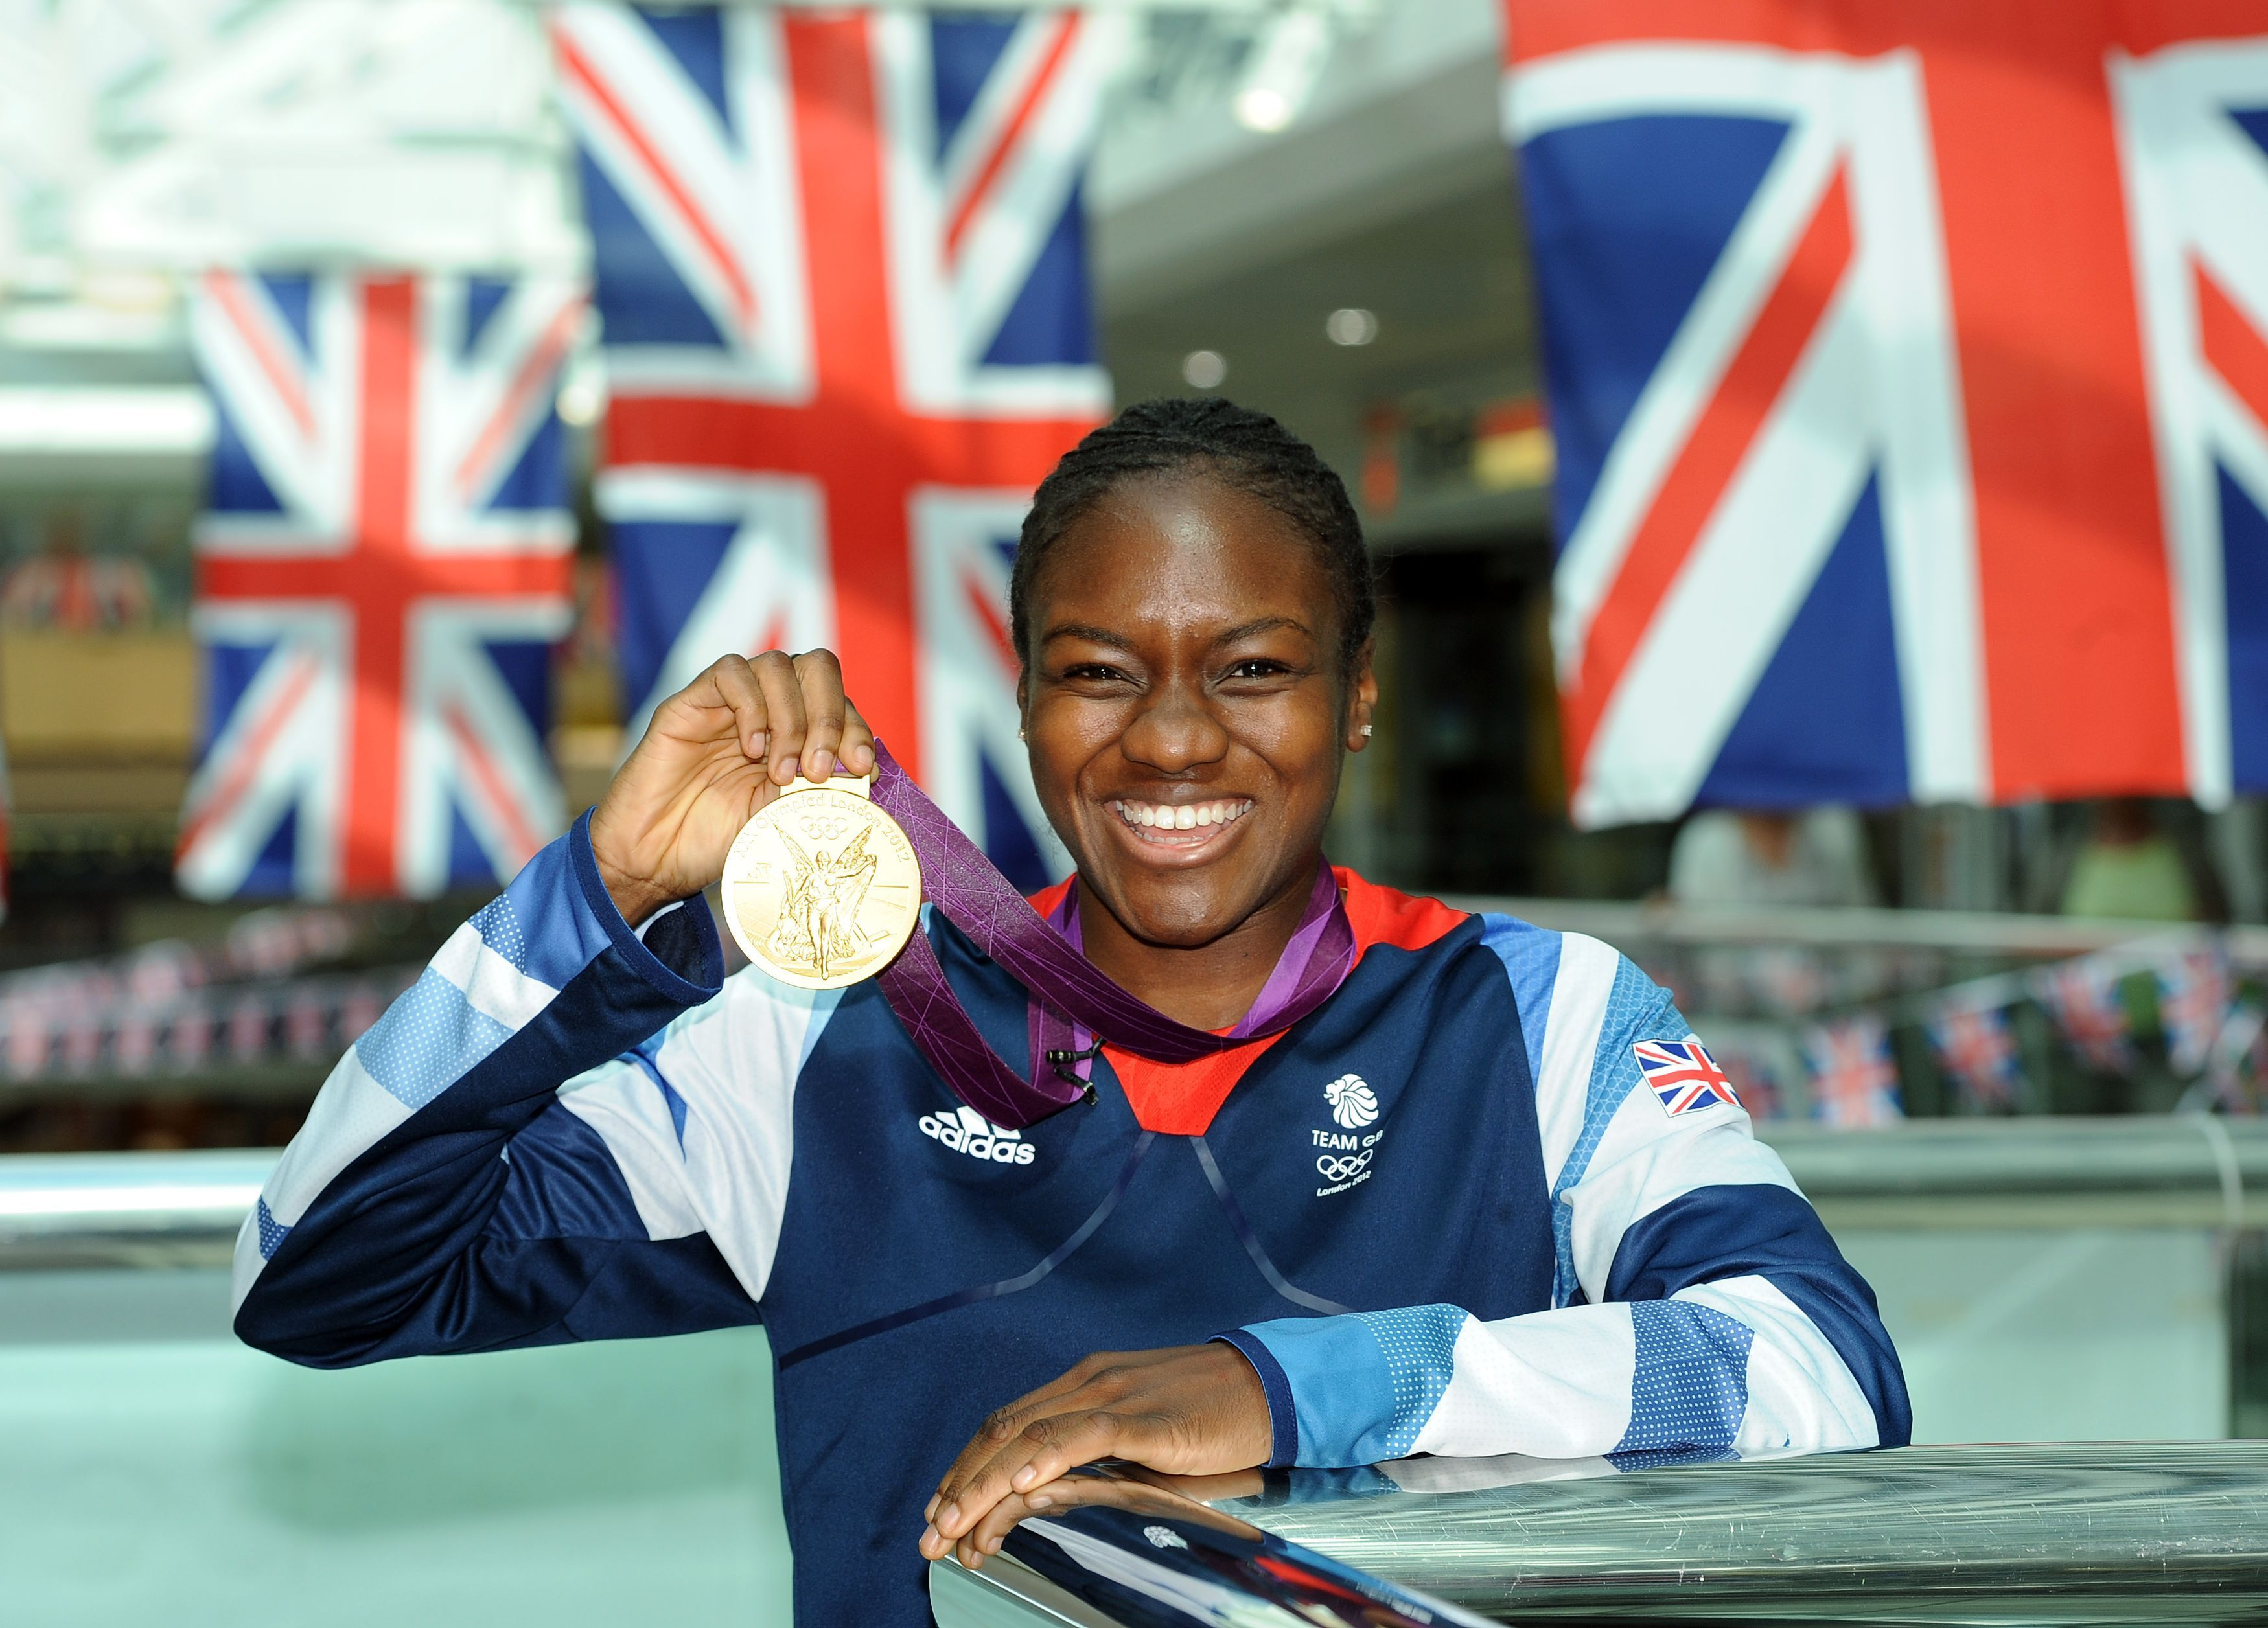 Nicola Adams with Gold Medal